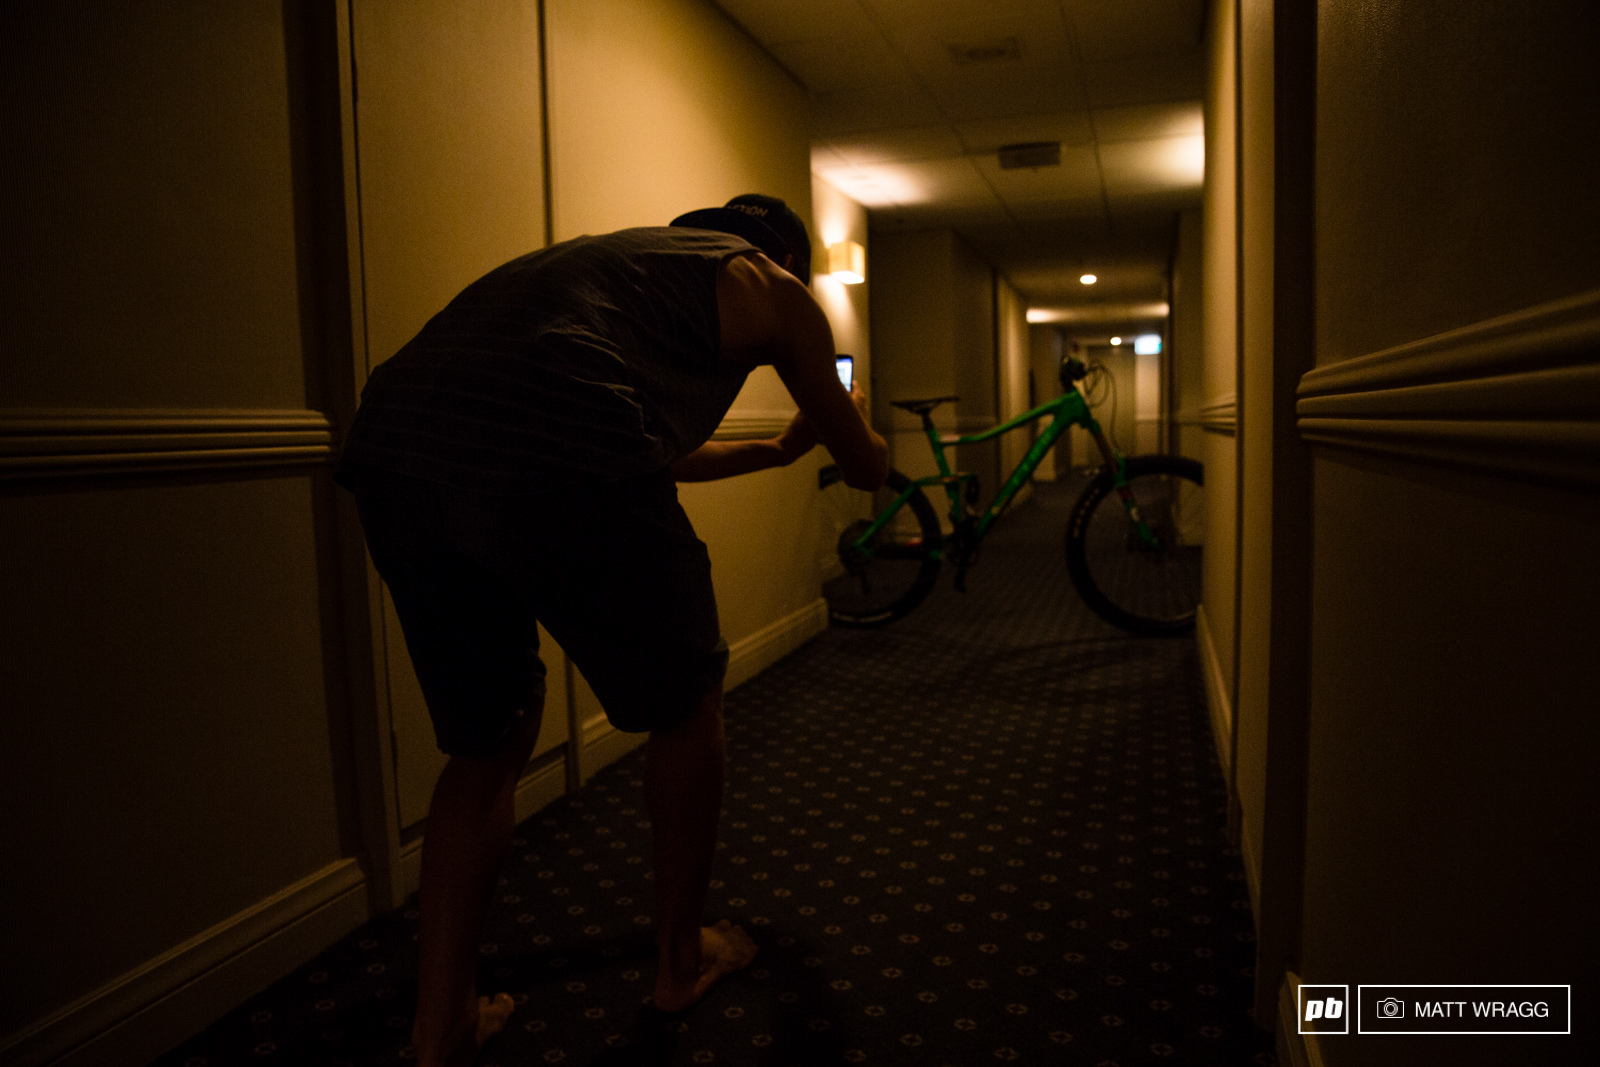 Everyone has different practice day rituals the hotel corridor bike selfie seems to be an ever more common one these days.